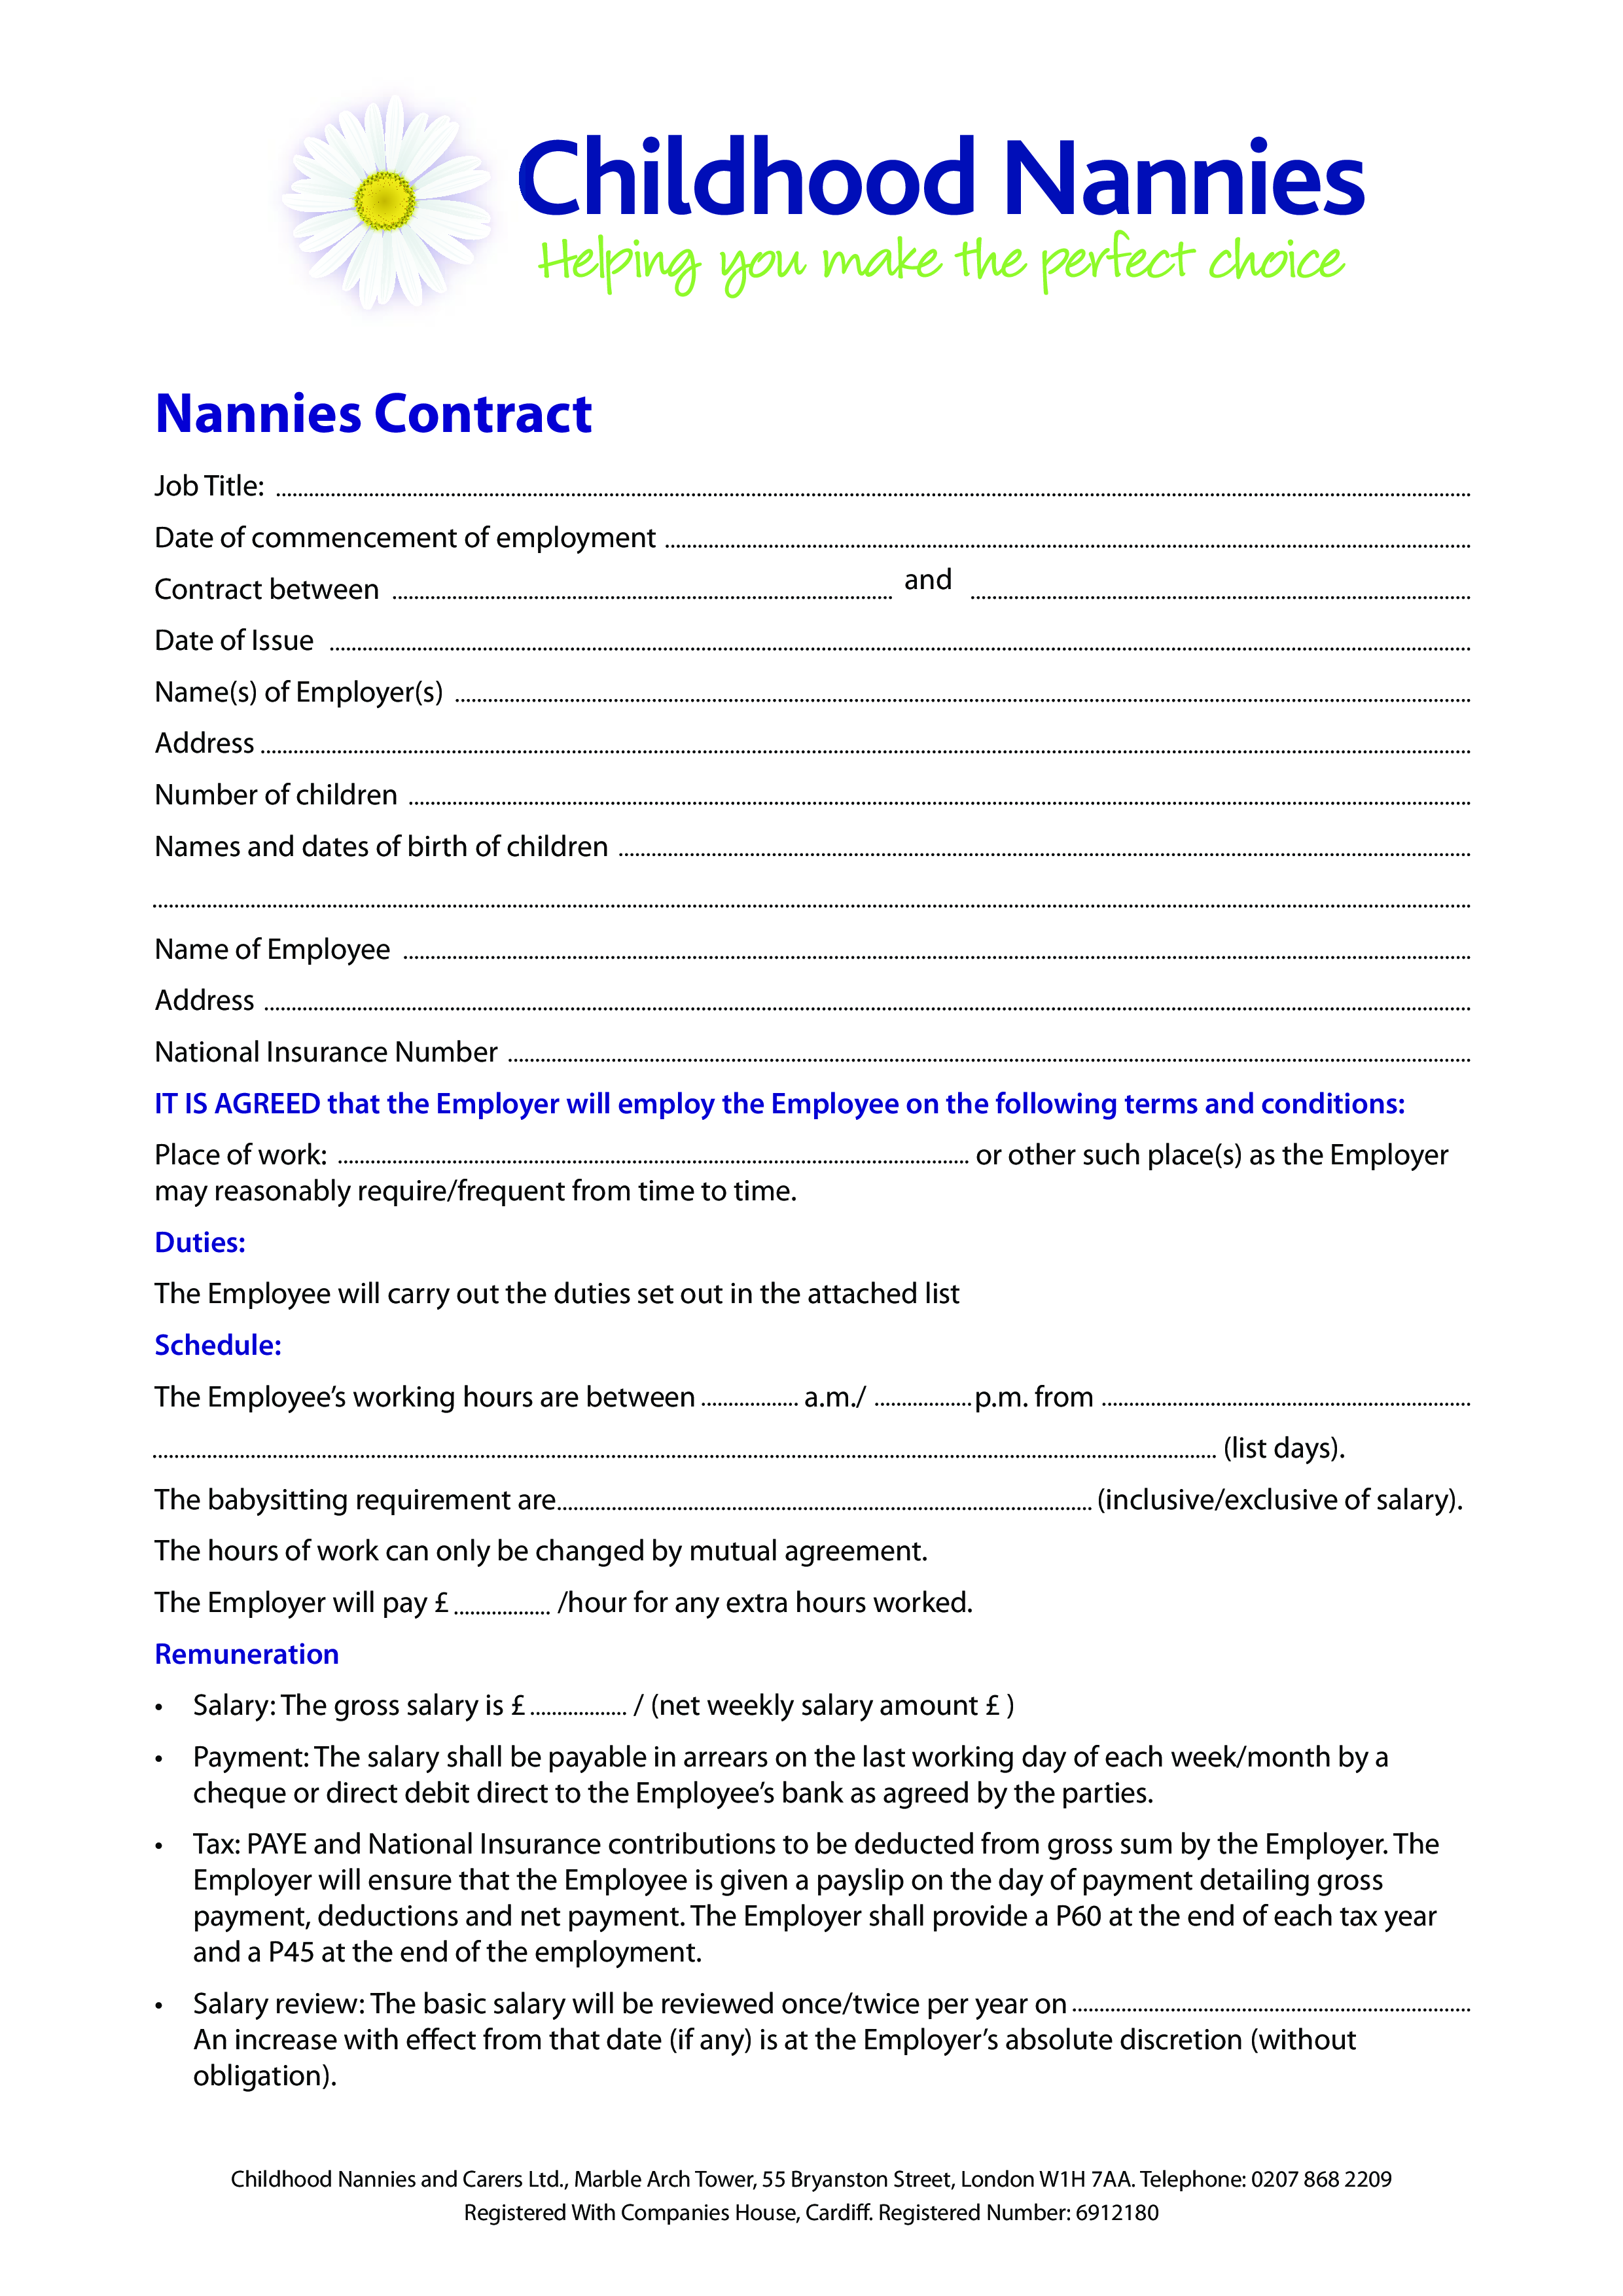 Nanny Contract example main image